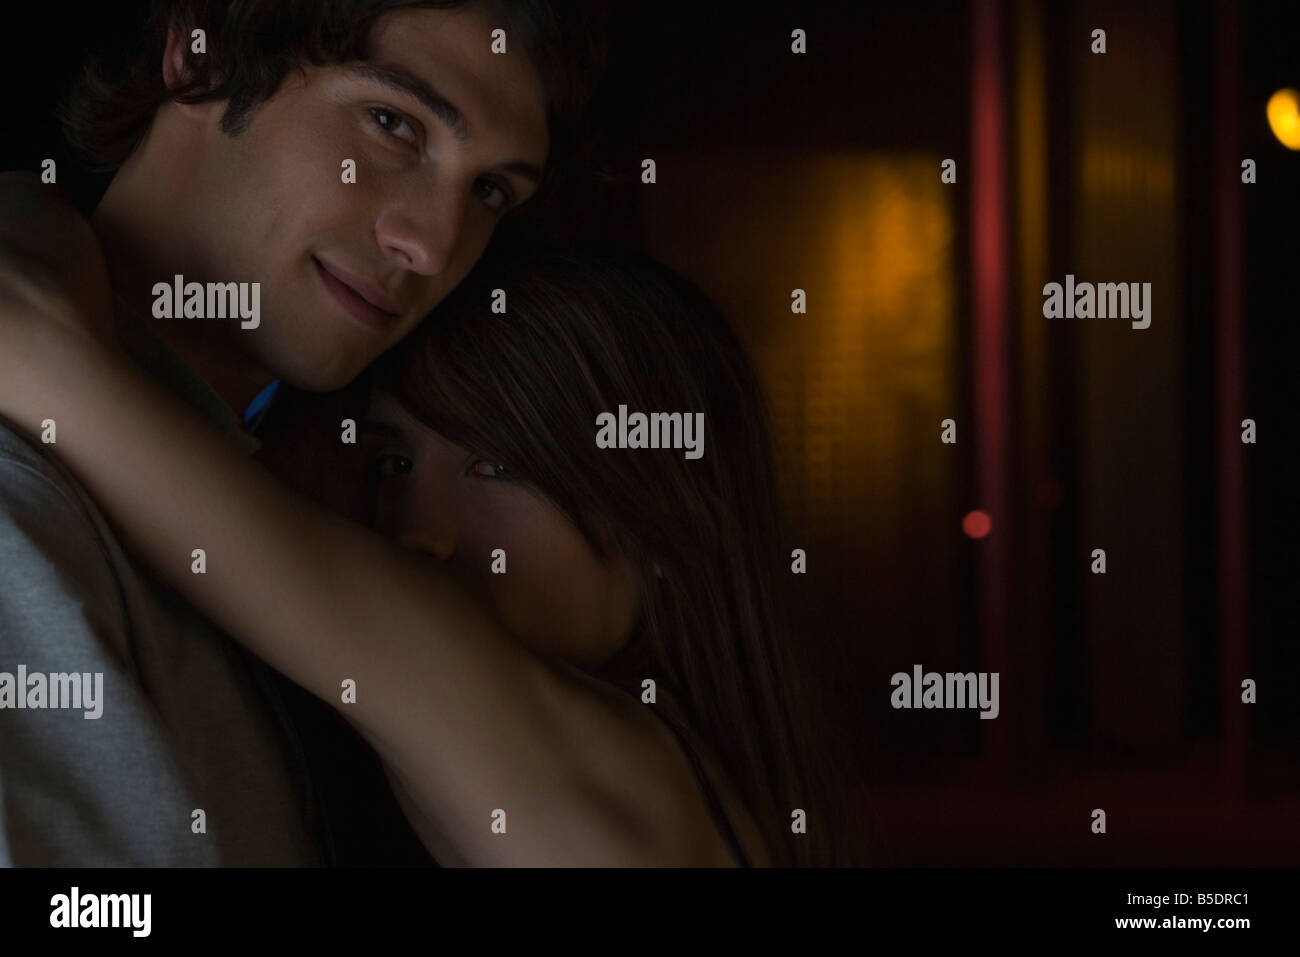 Couple embracing in darkly lit room, looking over shoulder at camera - Stock Image